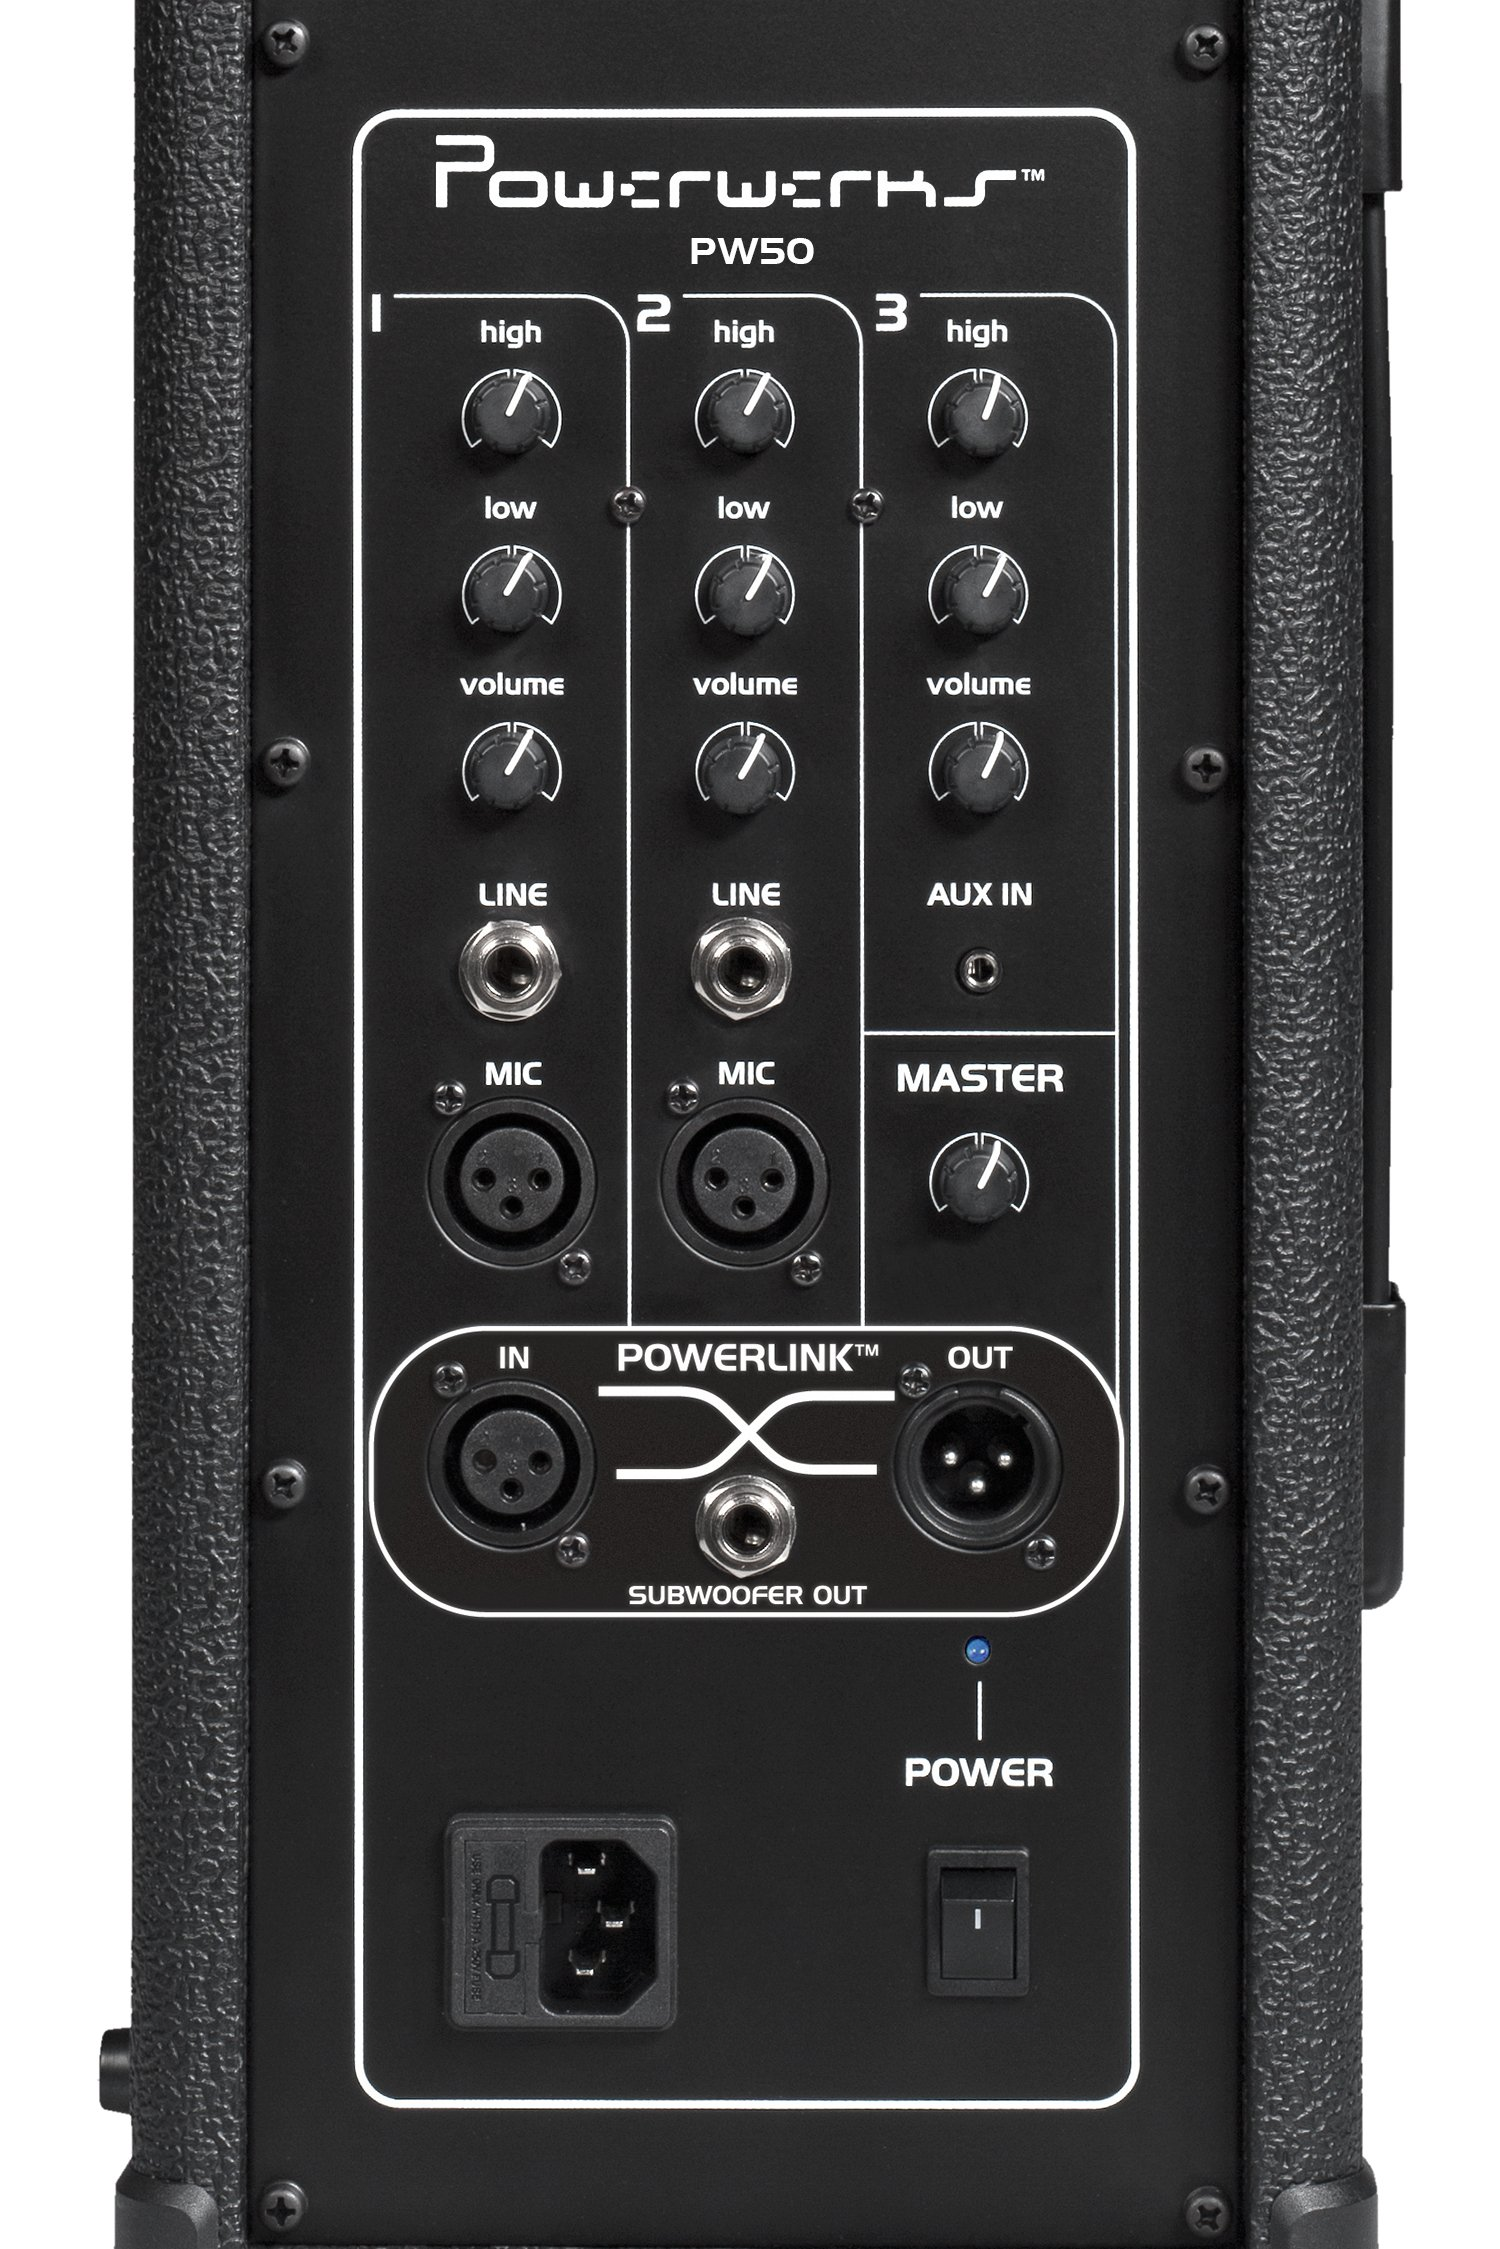 Powerwerks PA System PW50 by Powerwerks (Image #3)